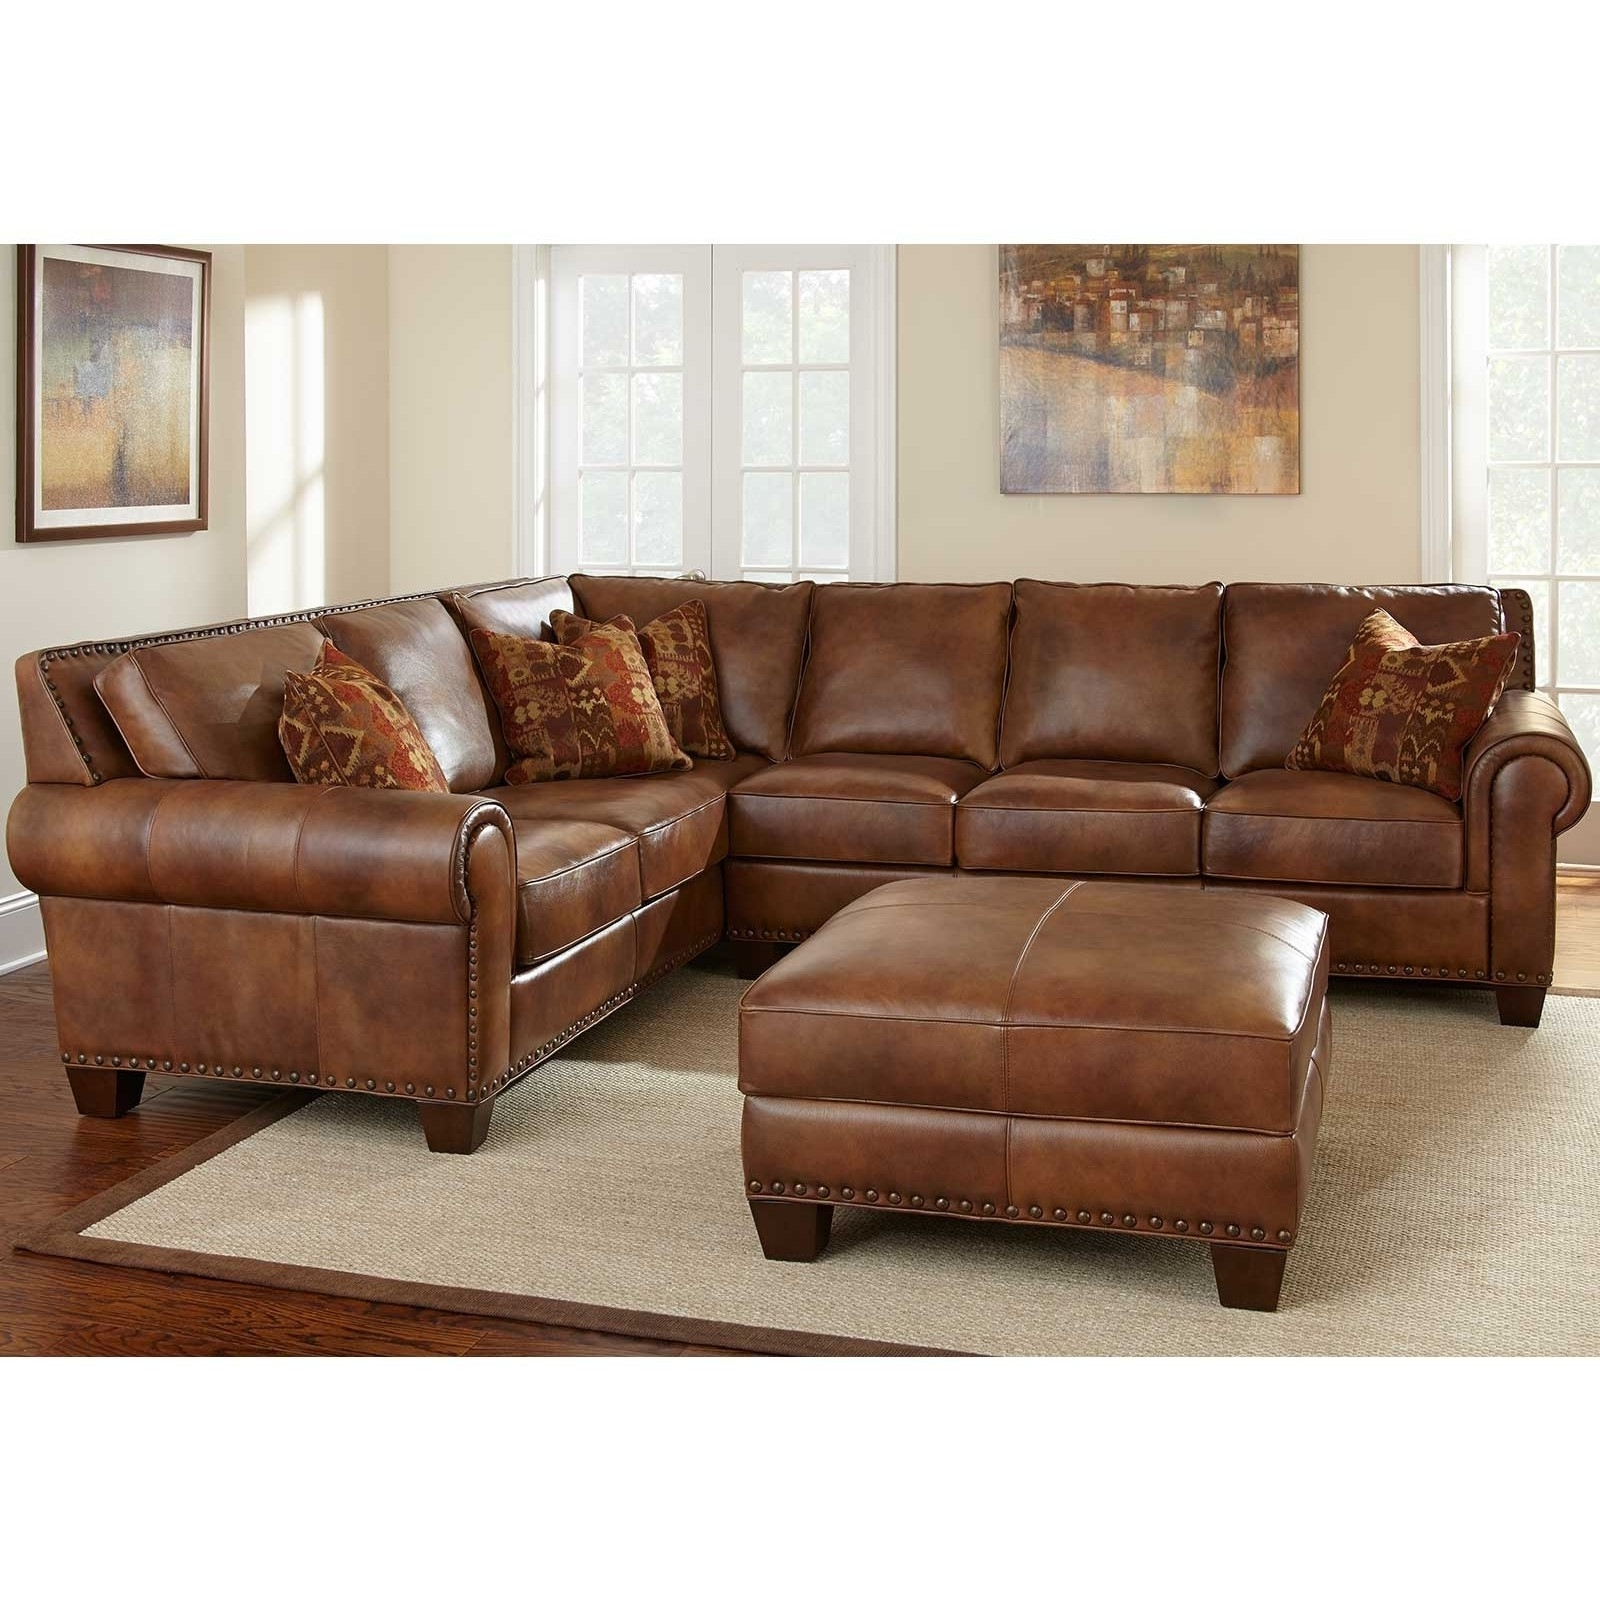 Most Recent Jcpenney Sectional Sofas Inside Microfiber Sectional Sofas For Sale – Hotelsbacau (View 12 of 20)